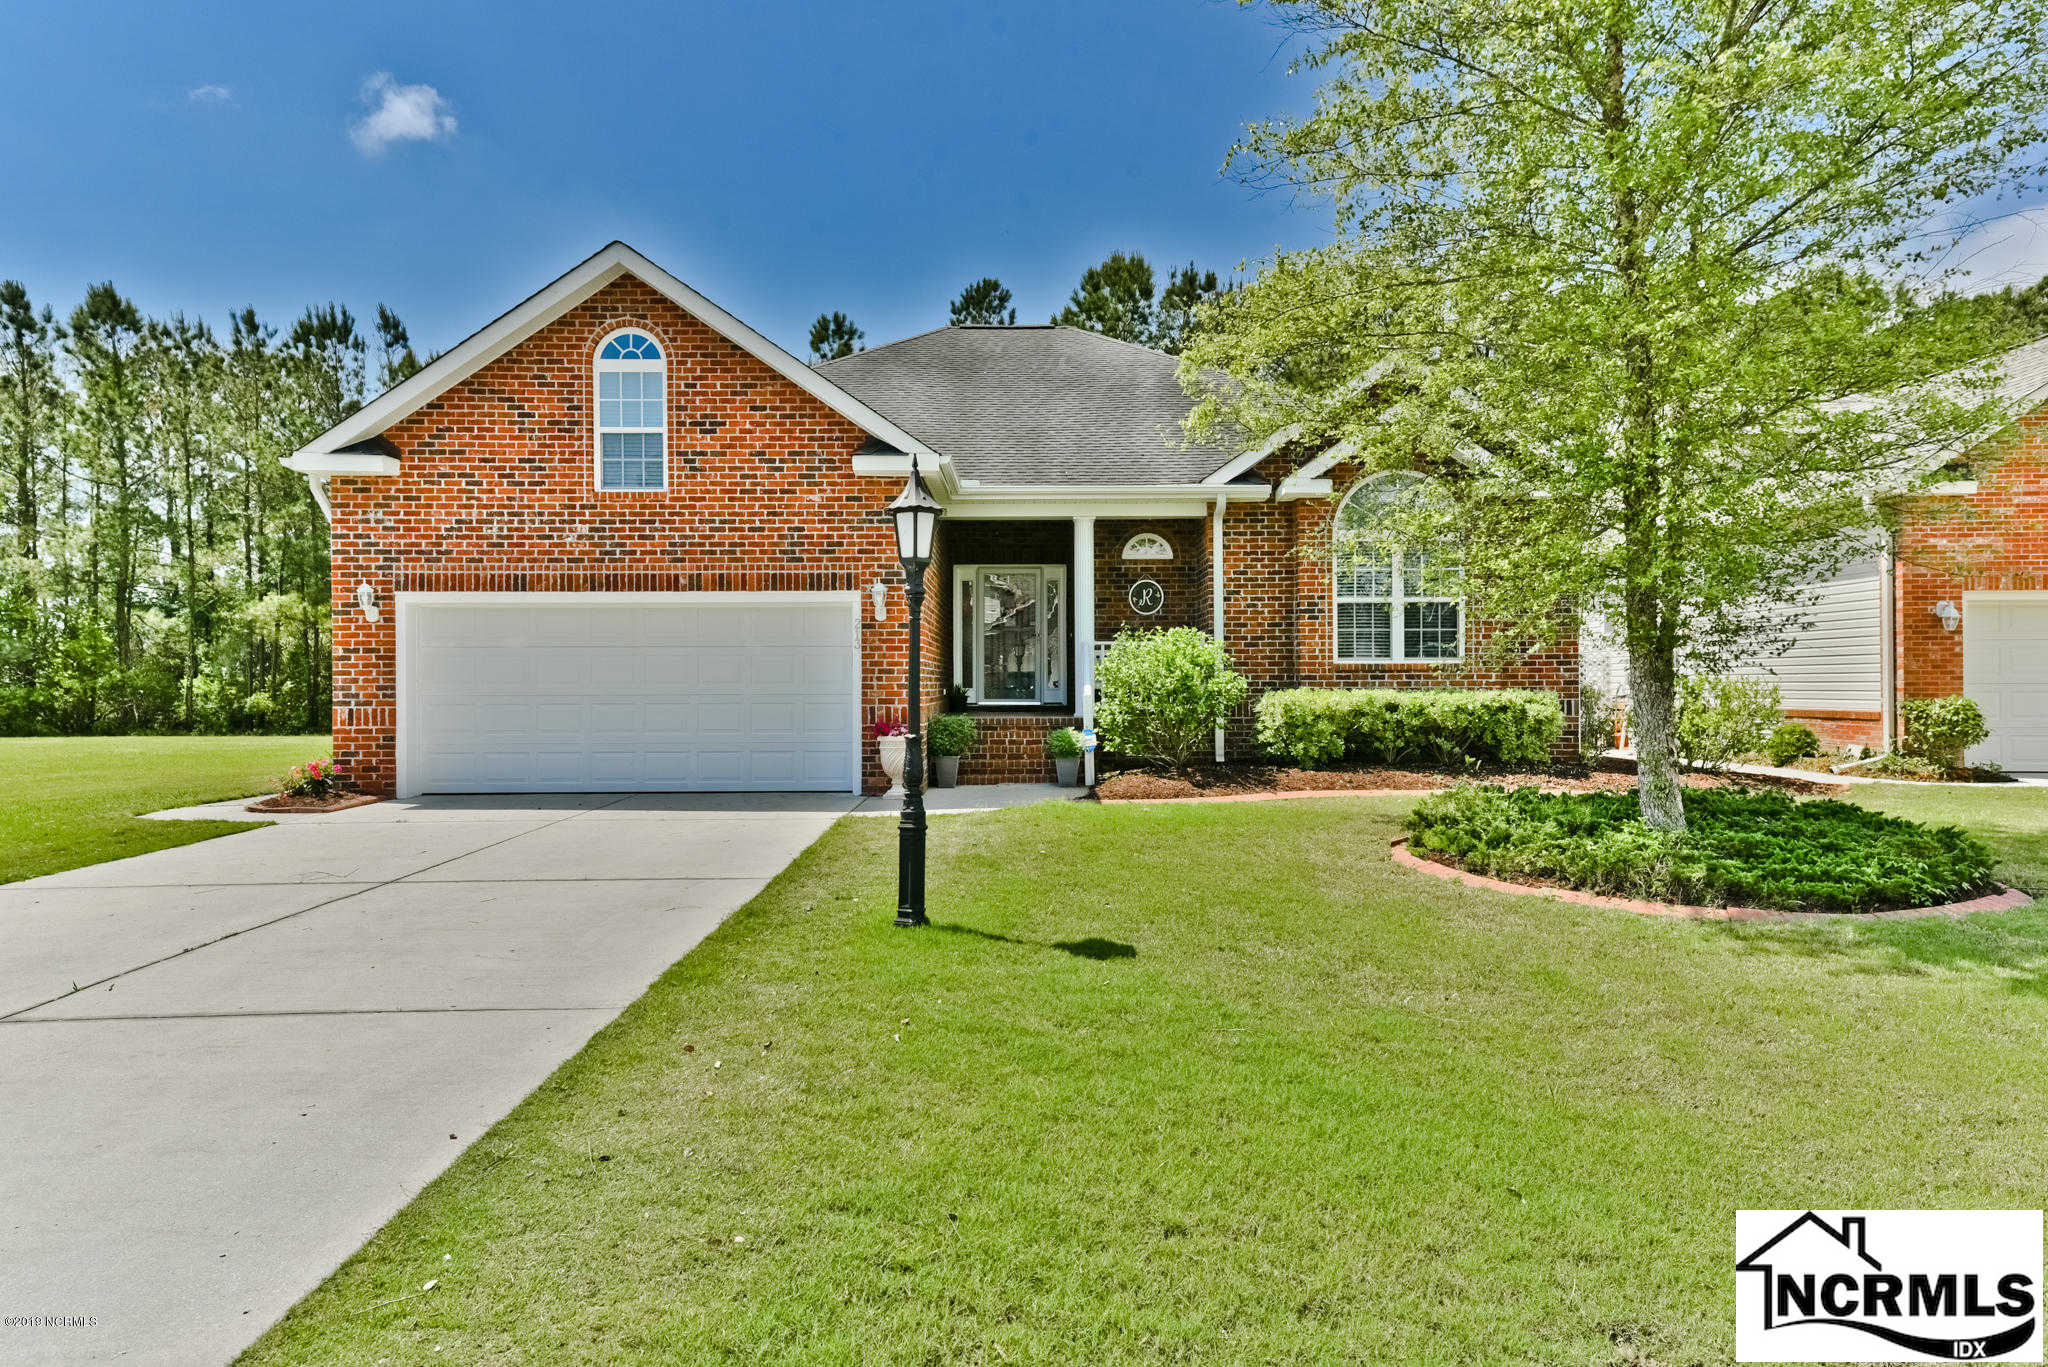 213 Ravennaside Drive NW, Calabash, NC 28467 now has a new price of $344,900!